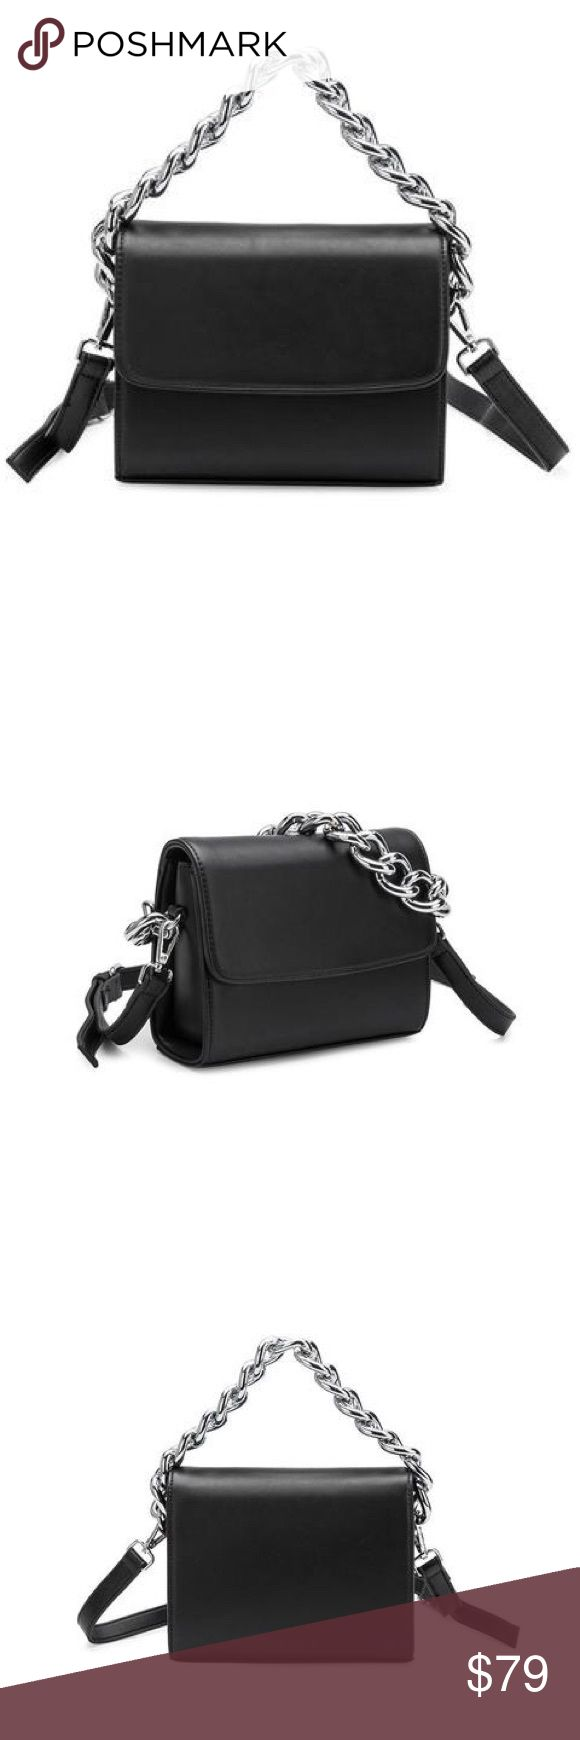 """Elle Chain Handbag The Elle Chain Handbag is adorned with a chrome thick chain shoulder strap and gorgeous premium vegan leather body.  * Premium Vegan Leather * PETA Approved * Eco-Luxe Lining * Magnetic Flap Closure * Inside Pockets * Includes Long Adjustable Crossbody Strap * Chrome Hardware * 8""""L x 7""""W x 2.5""""H * Black Vegan Leather Melie Bianco Bags Shoulder Bags"""